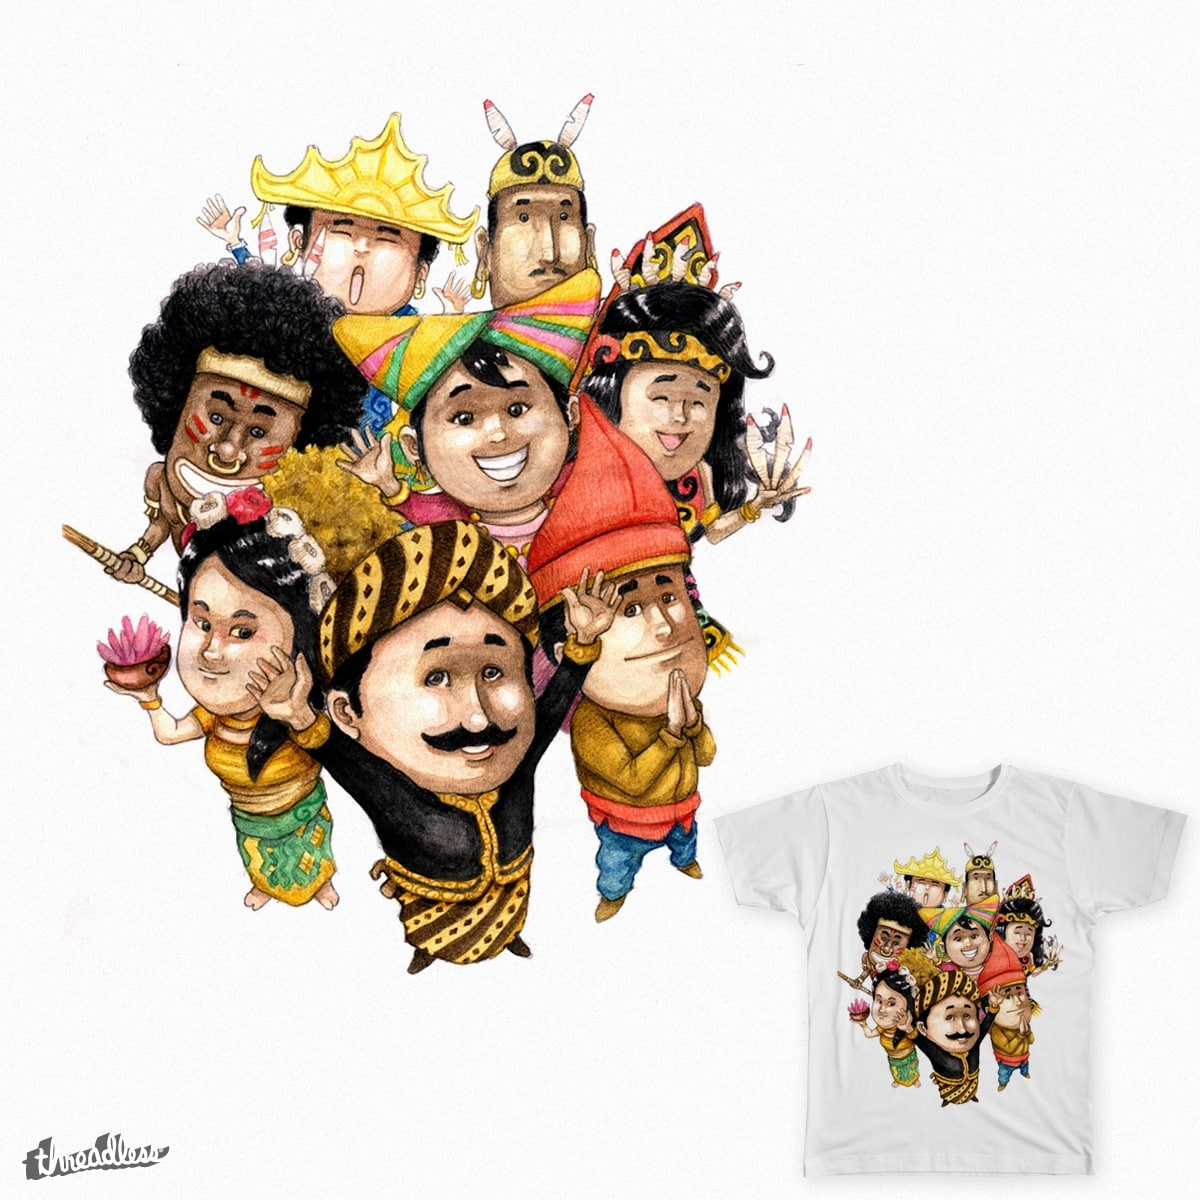 Indonesia by felixphi on Threadless